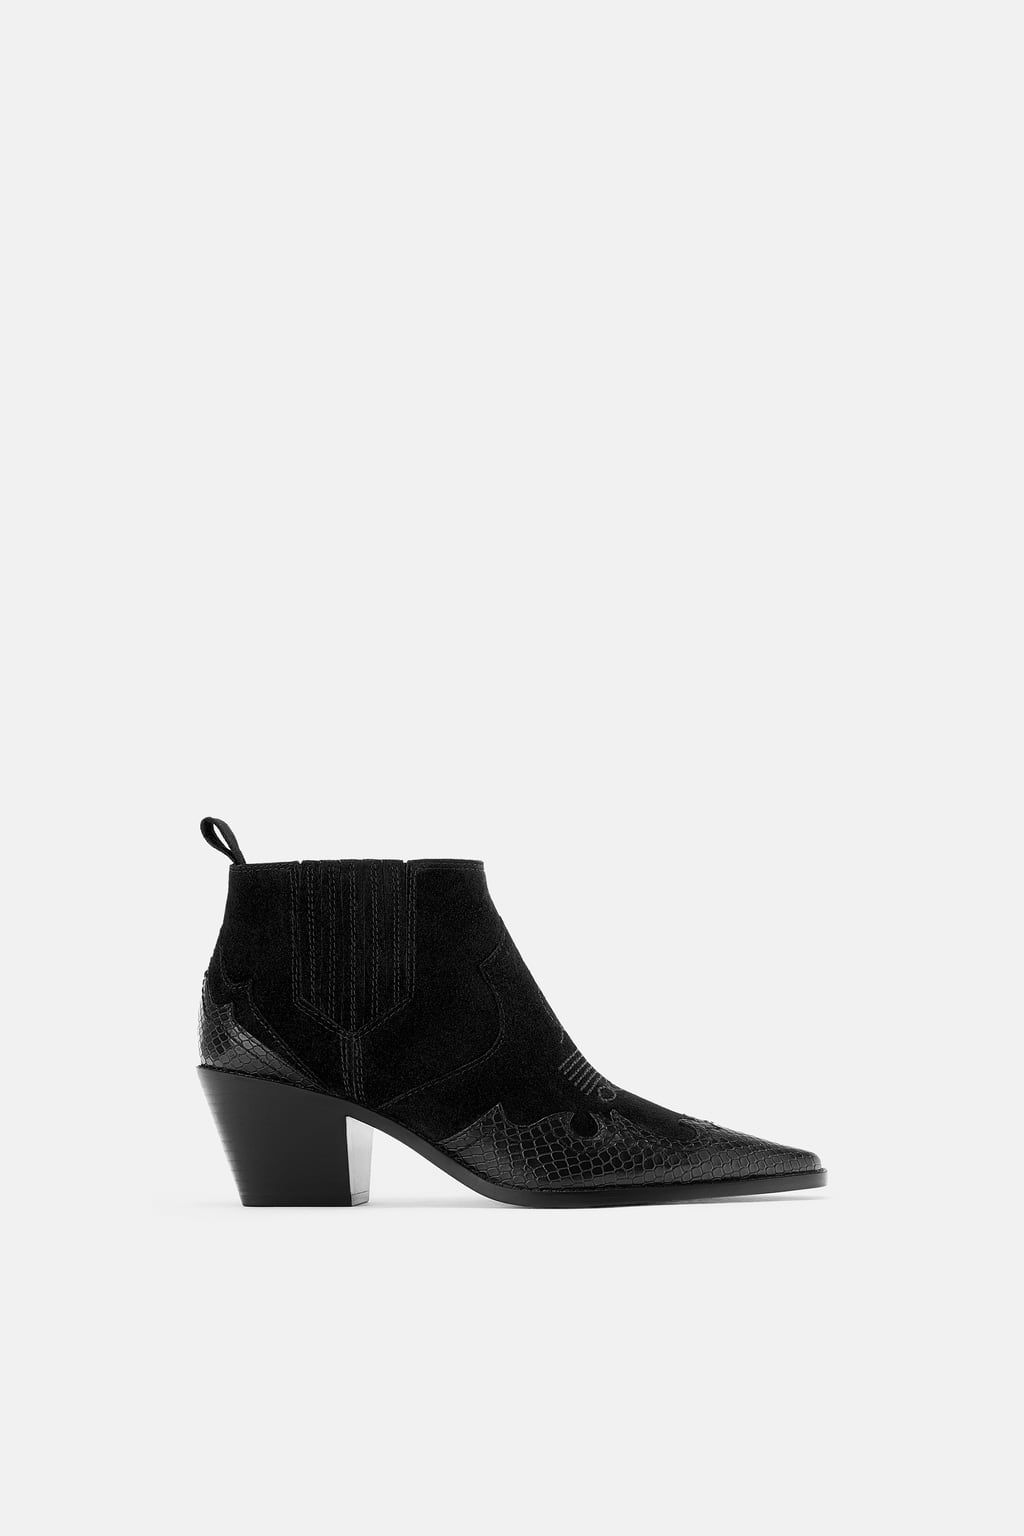 At Editor A Zara ZaraAccording Best To Boots9 Boots Fashion nm80Nw